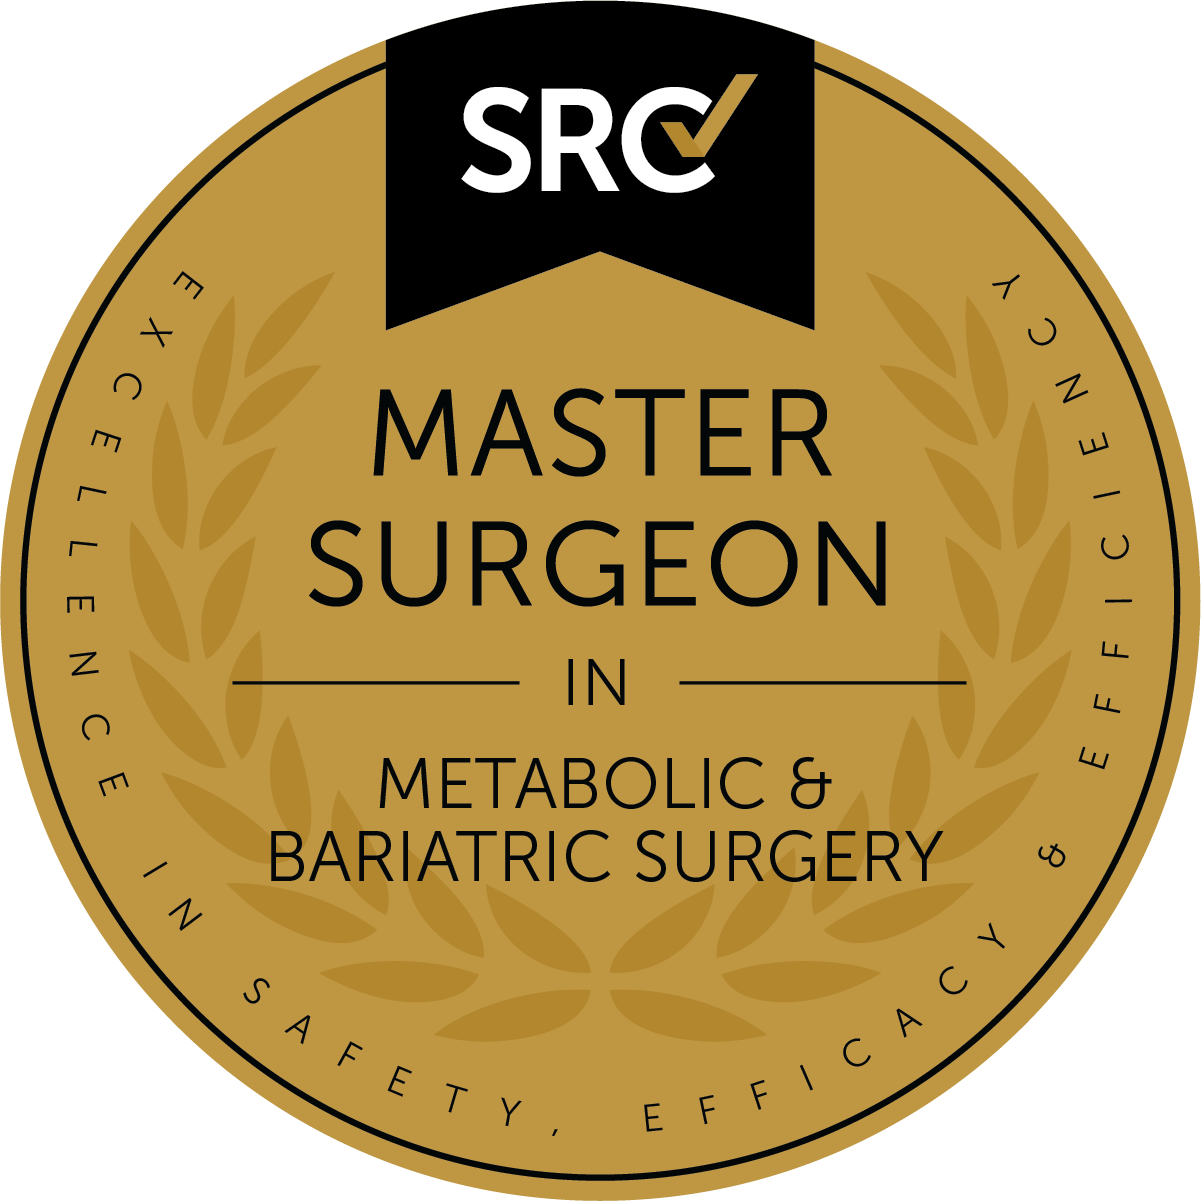 Master Surgeon Metabolic & Bariatric Surgery